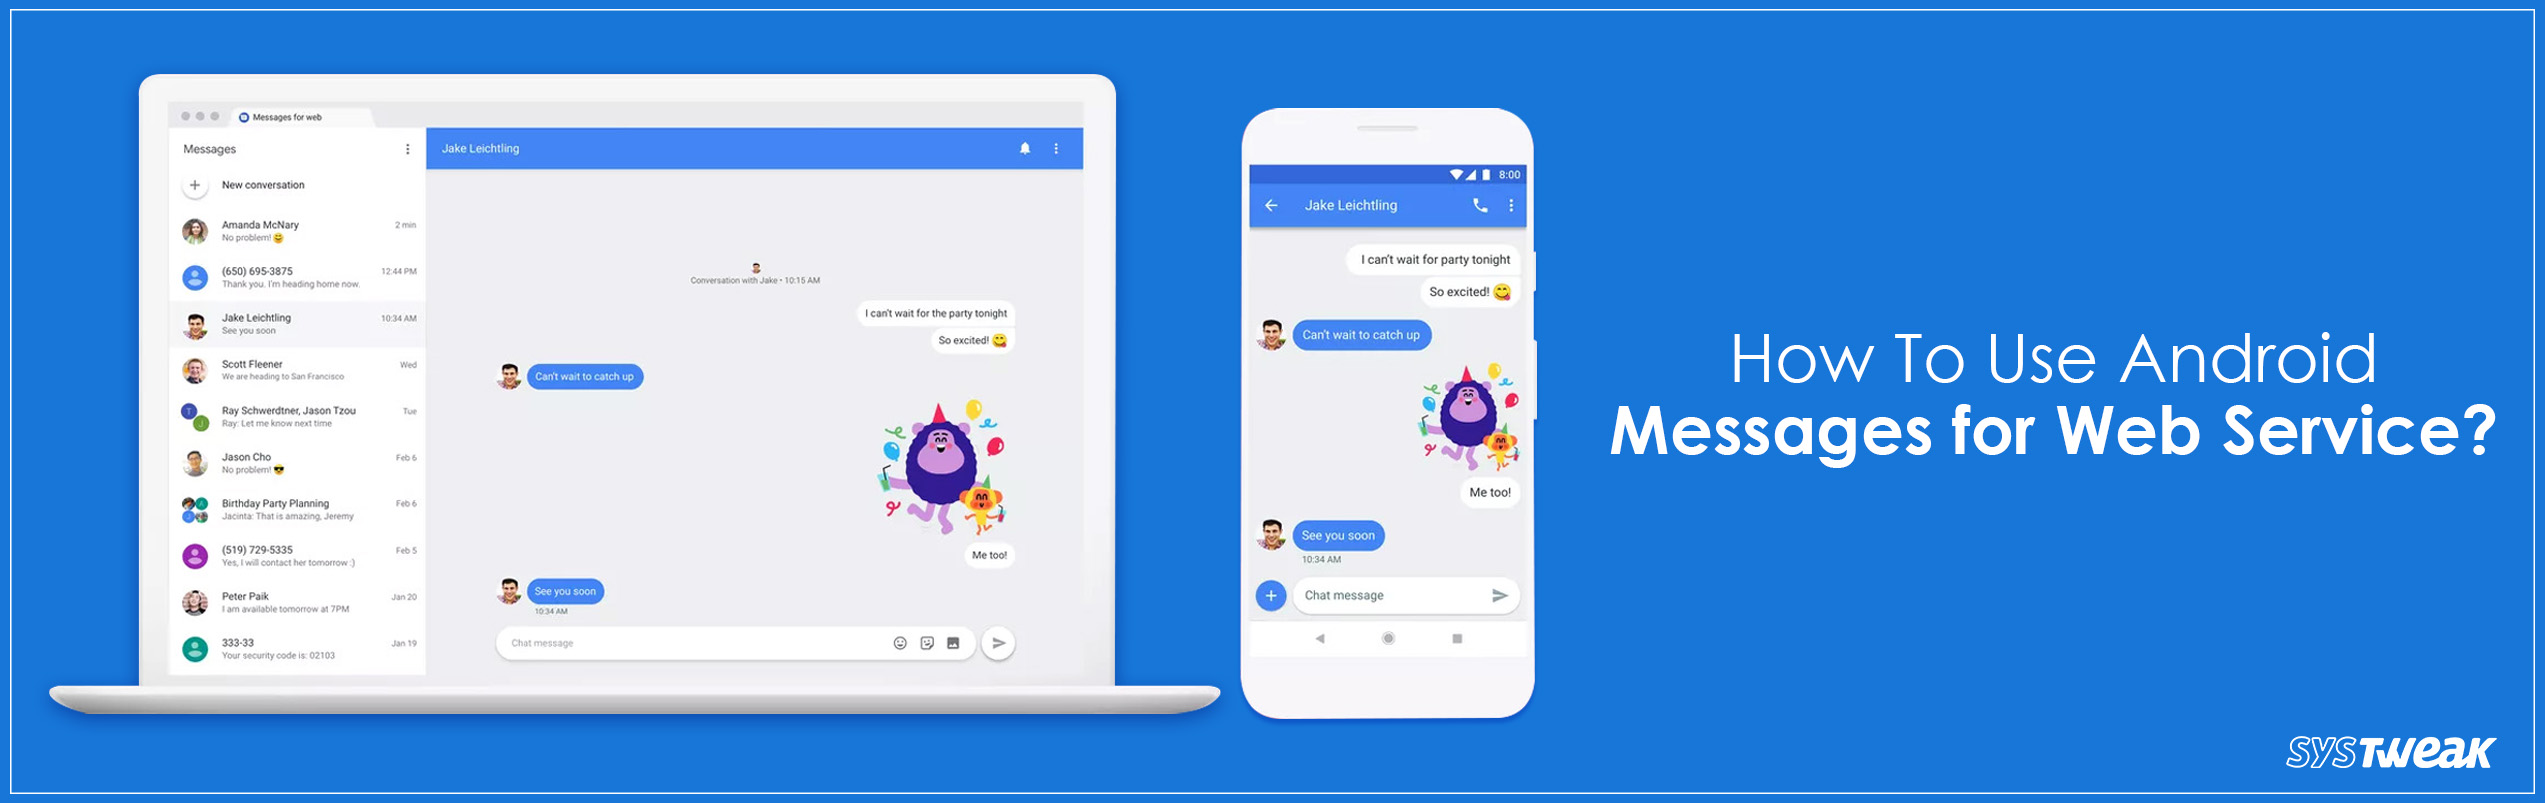 Getting Started With Android Messages For Web